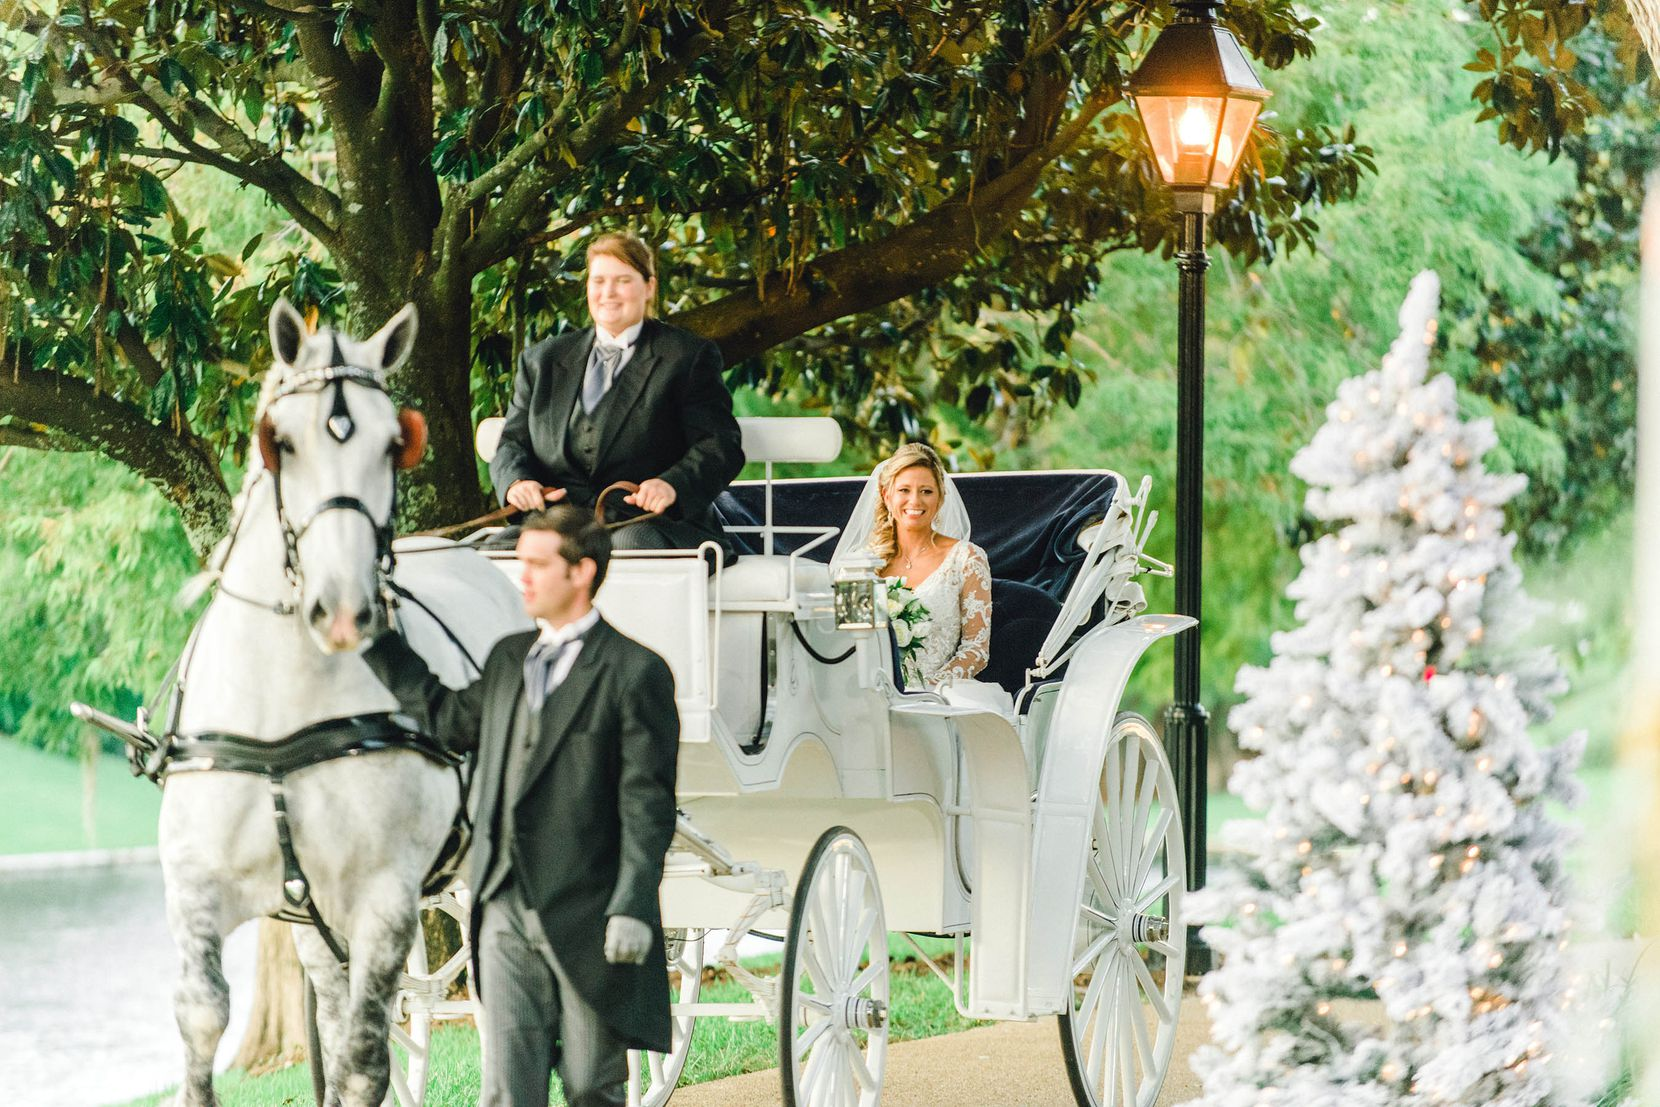 Disney offers a range of Fairy Tale Weddings at various locations around the theme park.